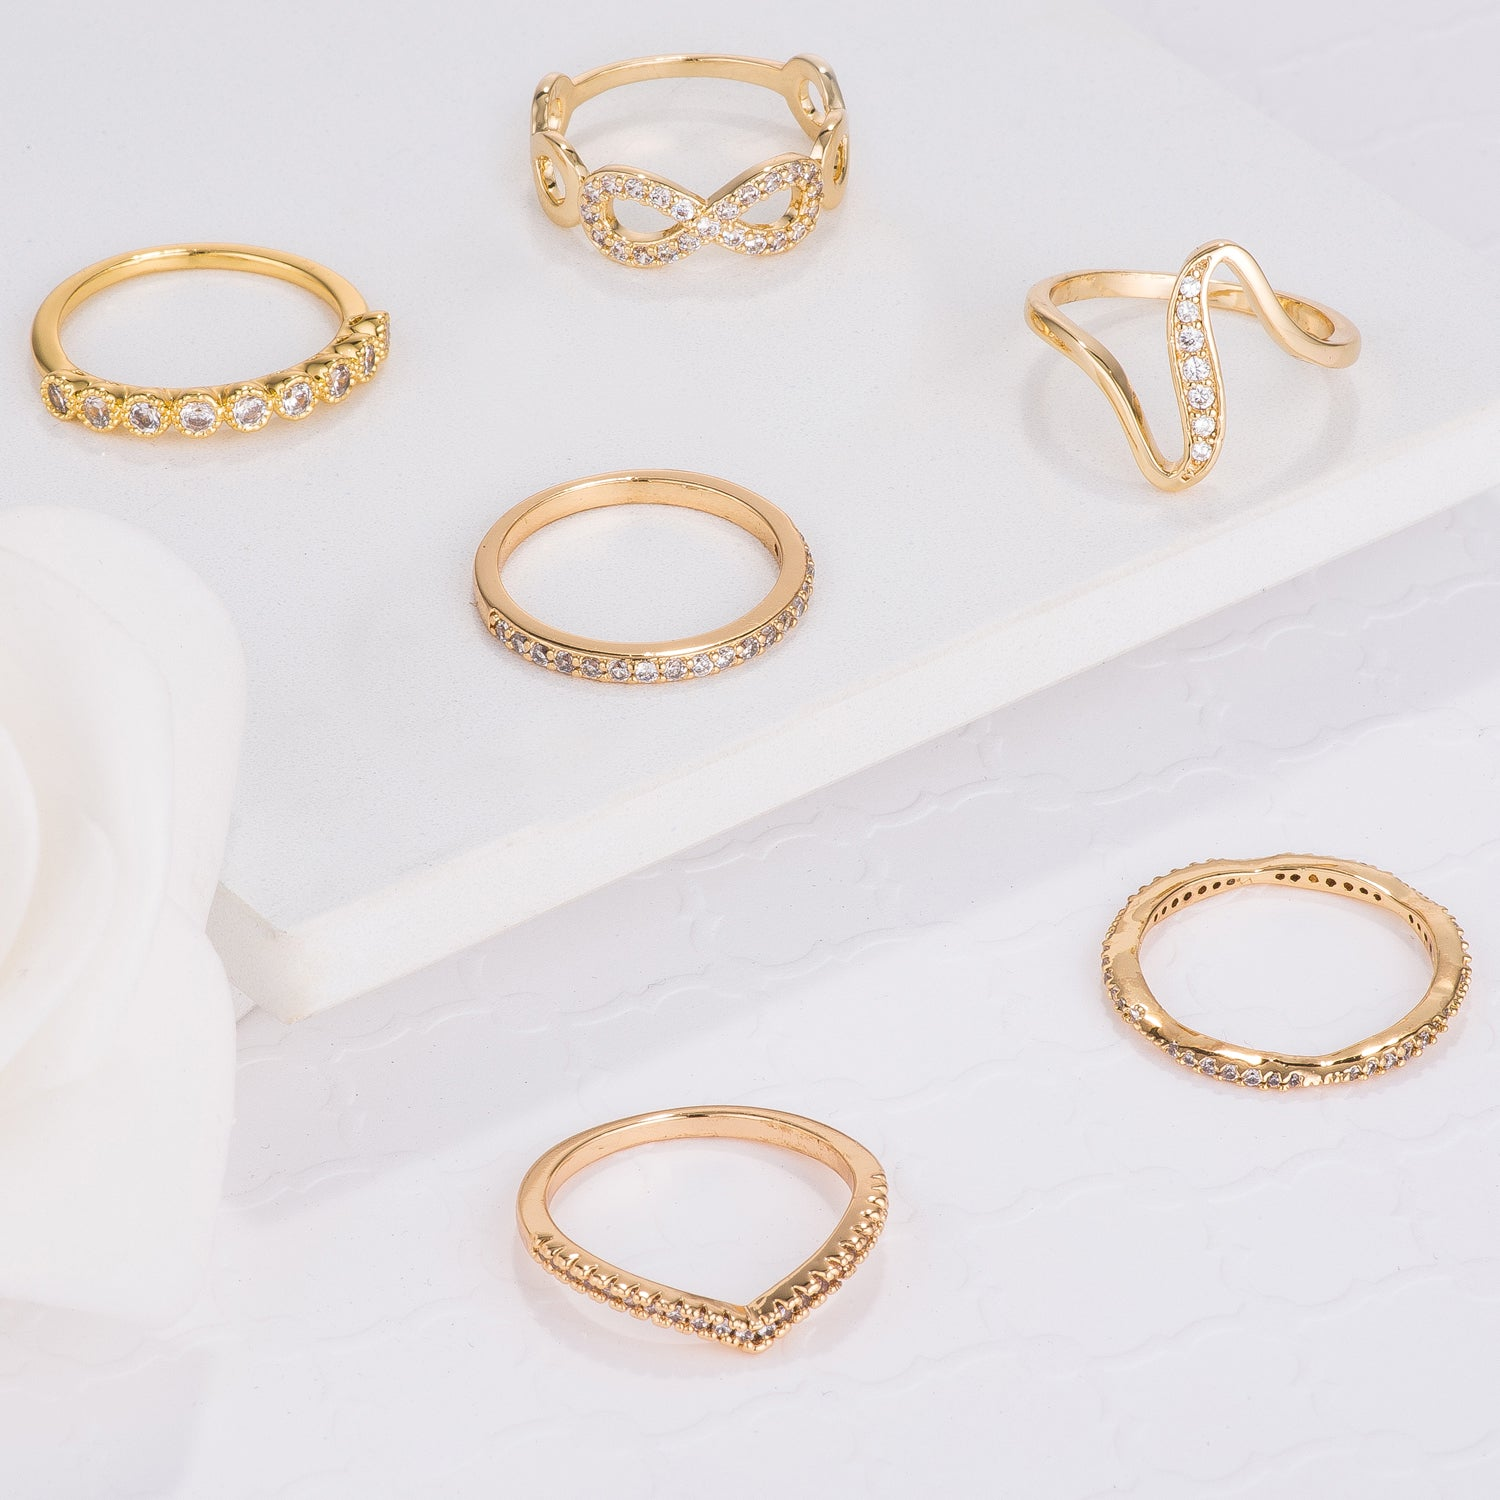 Trendy Gold Rings - BaubleBox